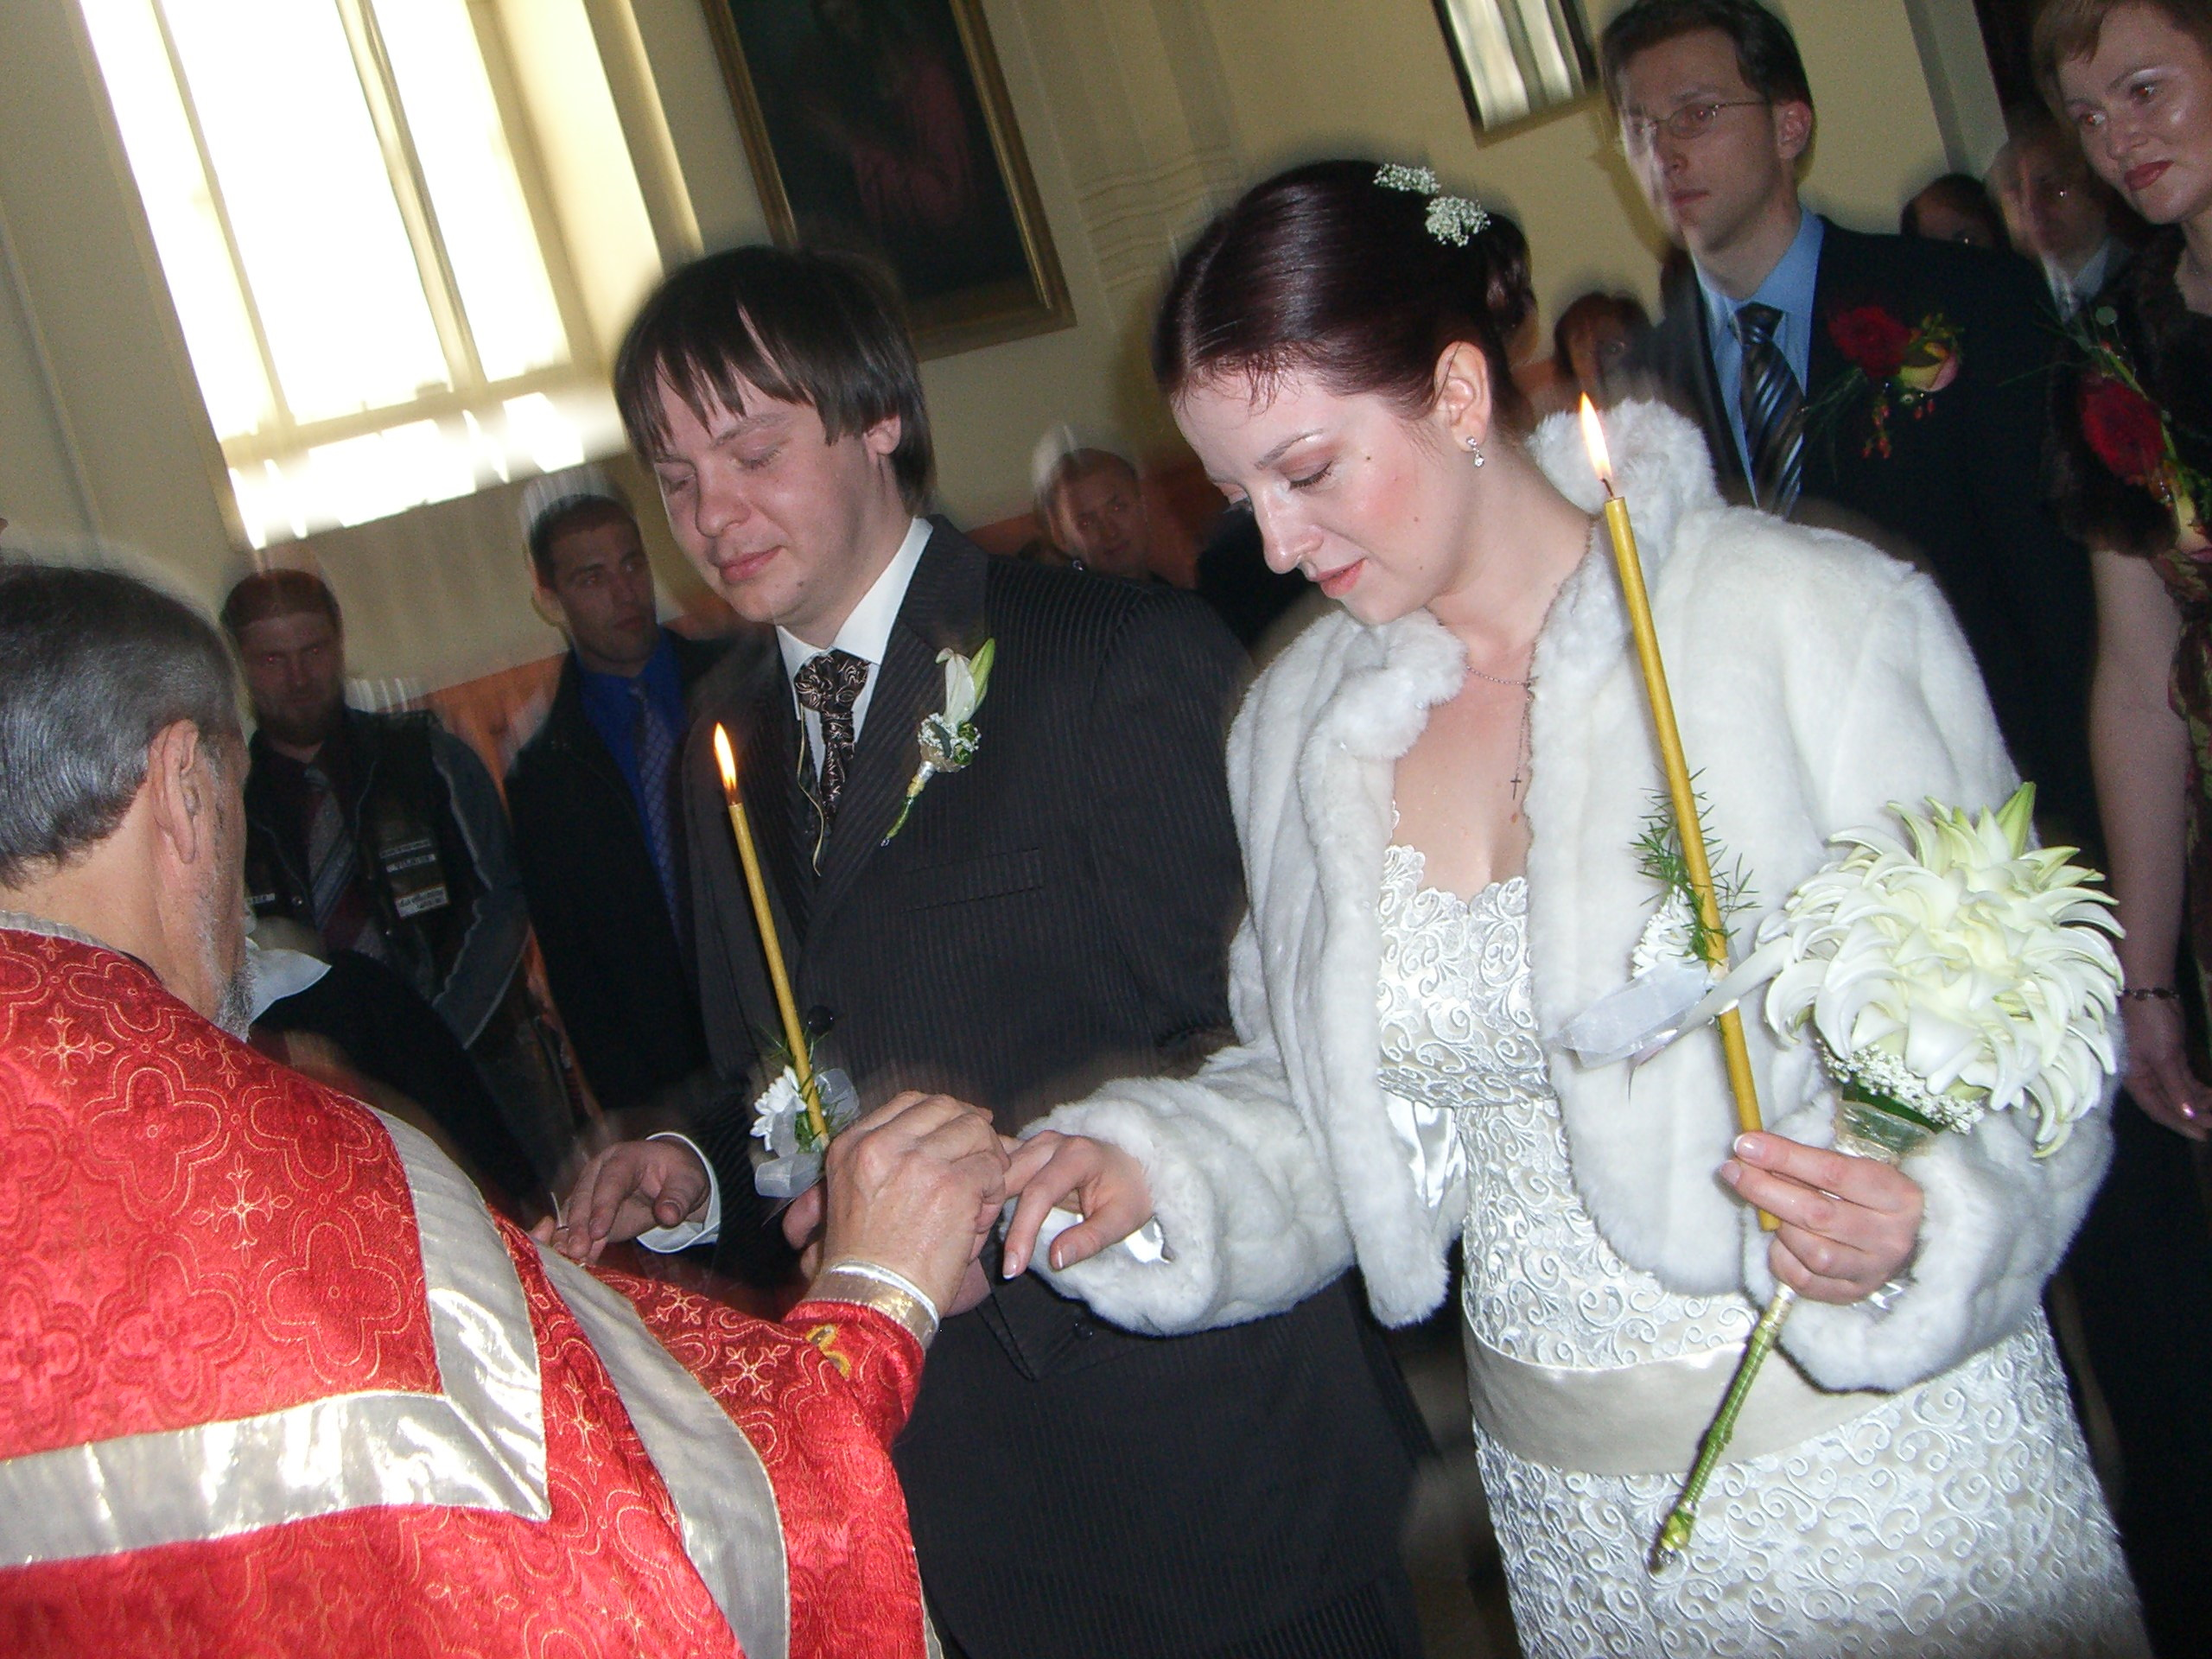 The priest puts rings on the bride's and groom's hands